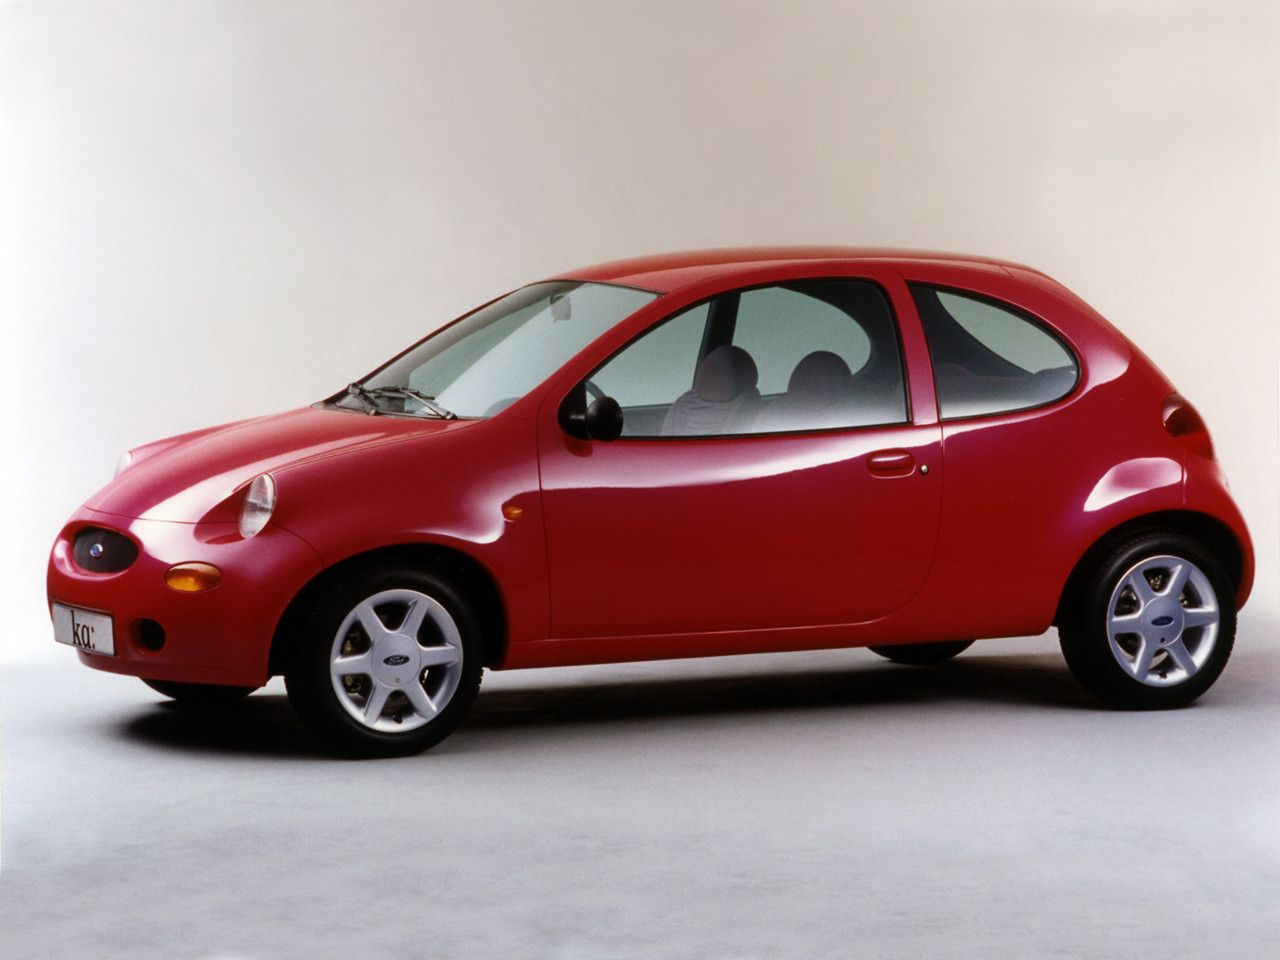 ford ka concept 1994 | Concept cars, Ford classic cars, Concept car design